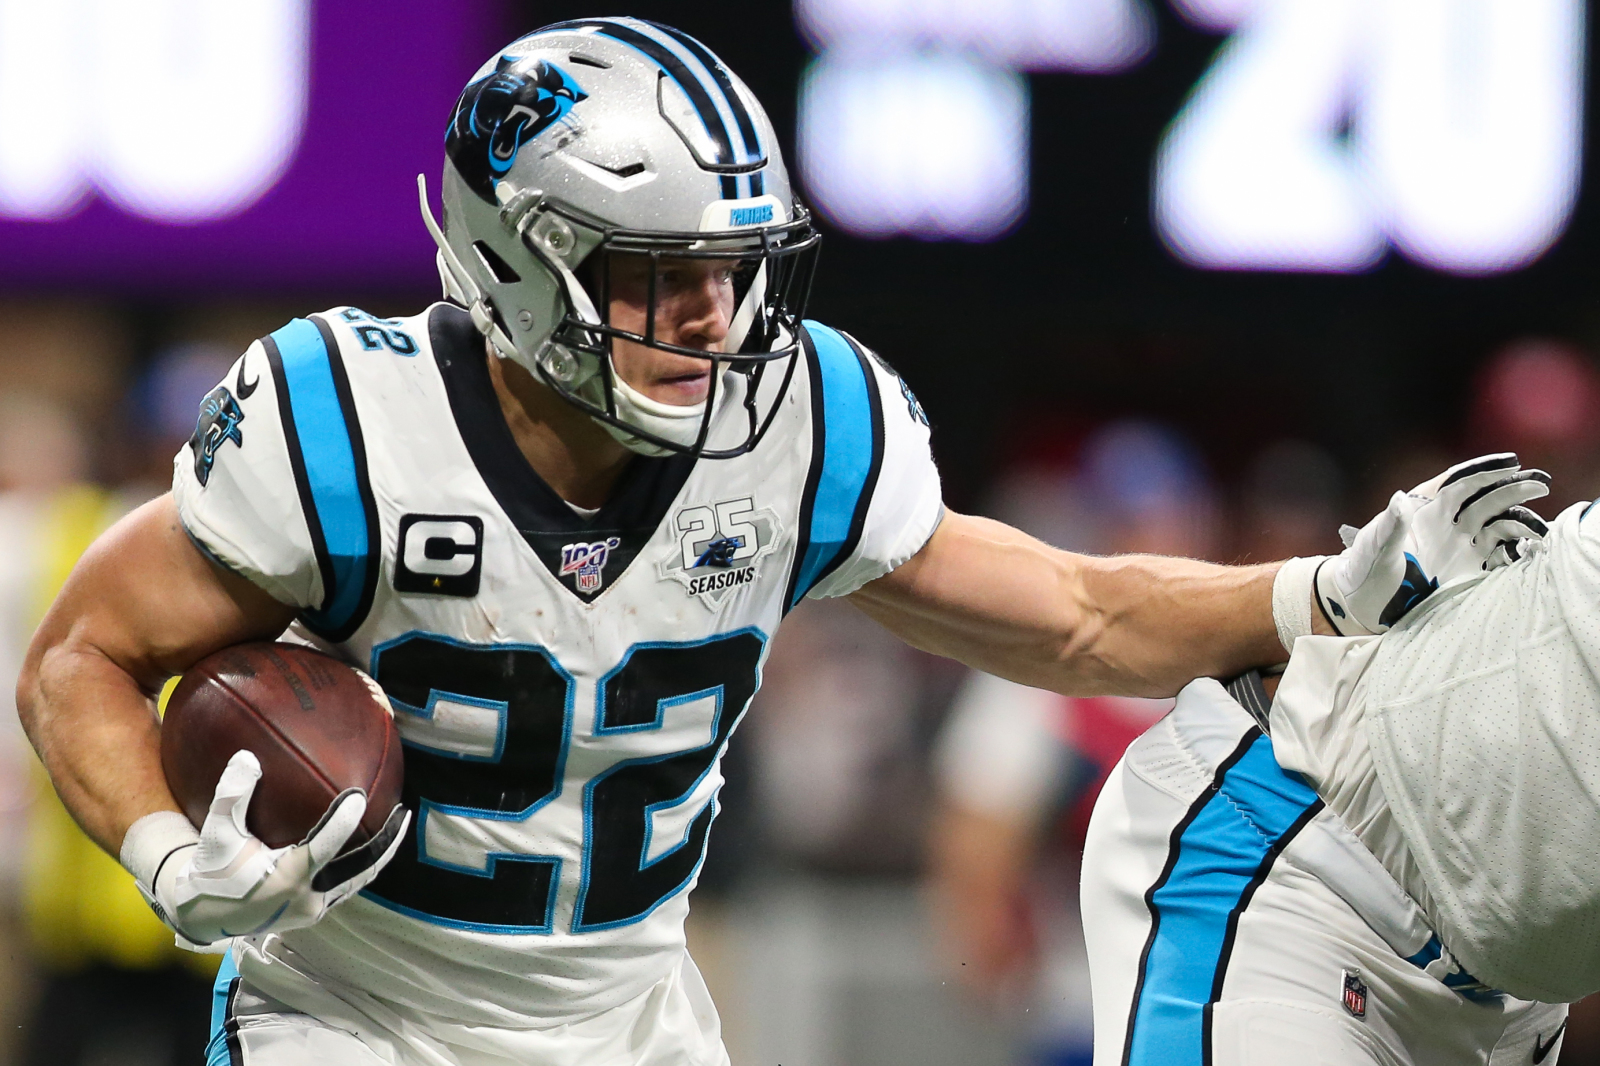 Carolina Panthers land at No. 31 in updated FanSided NFL power rankings